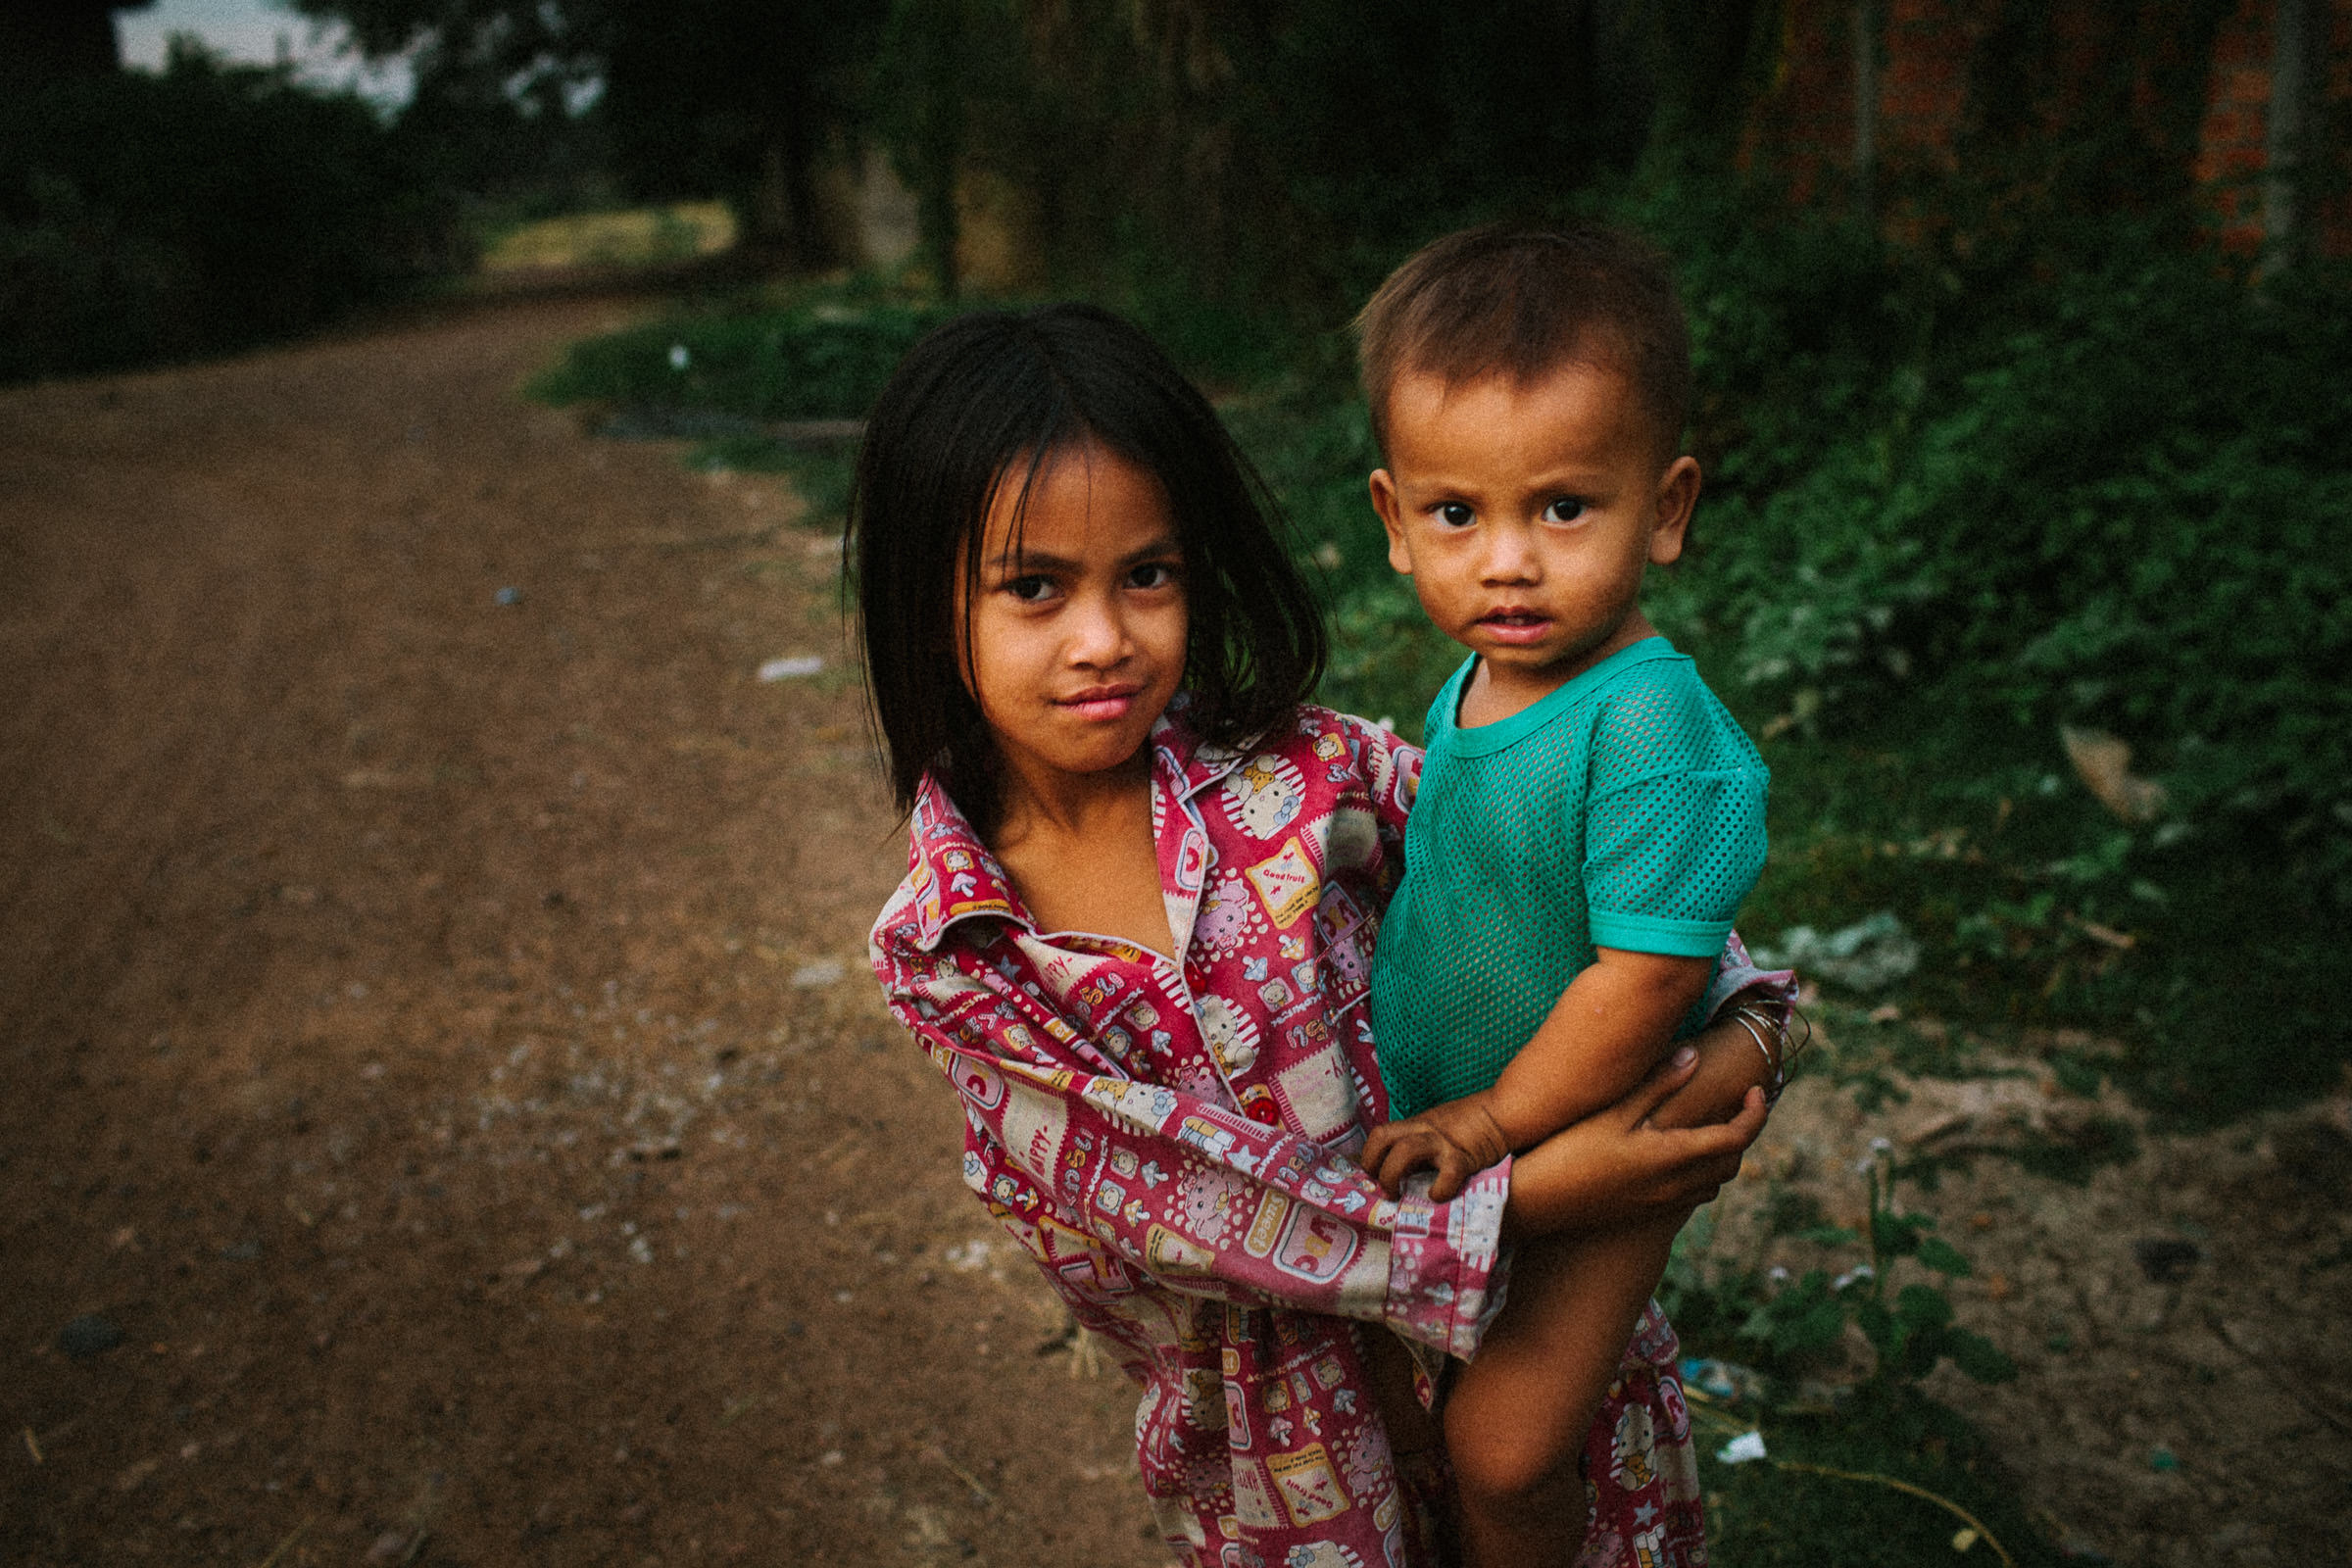 brandon_patoc_travel_photographer_in_cambodia_0003.jpg